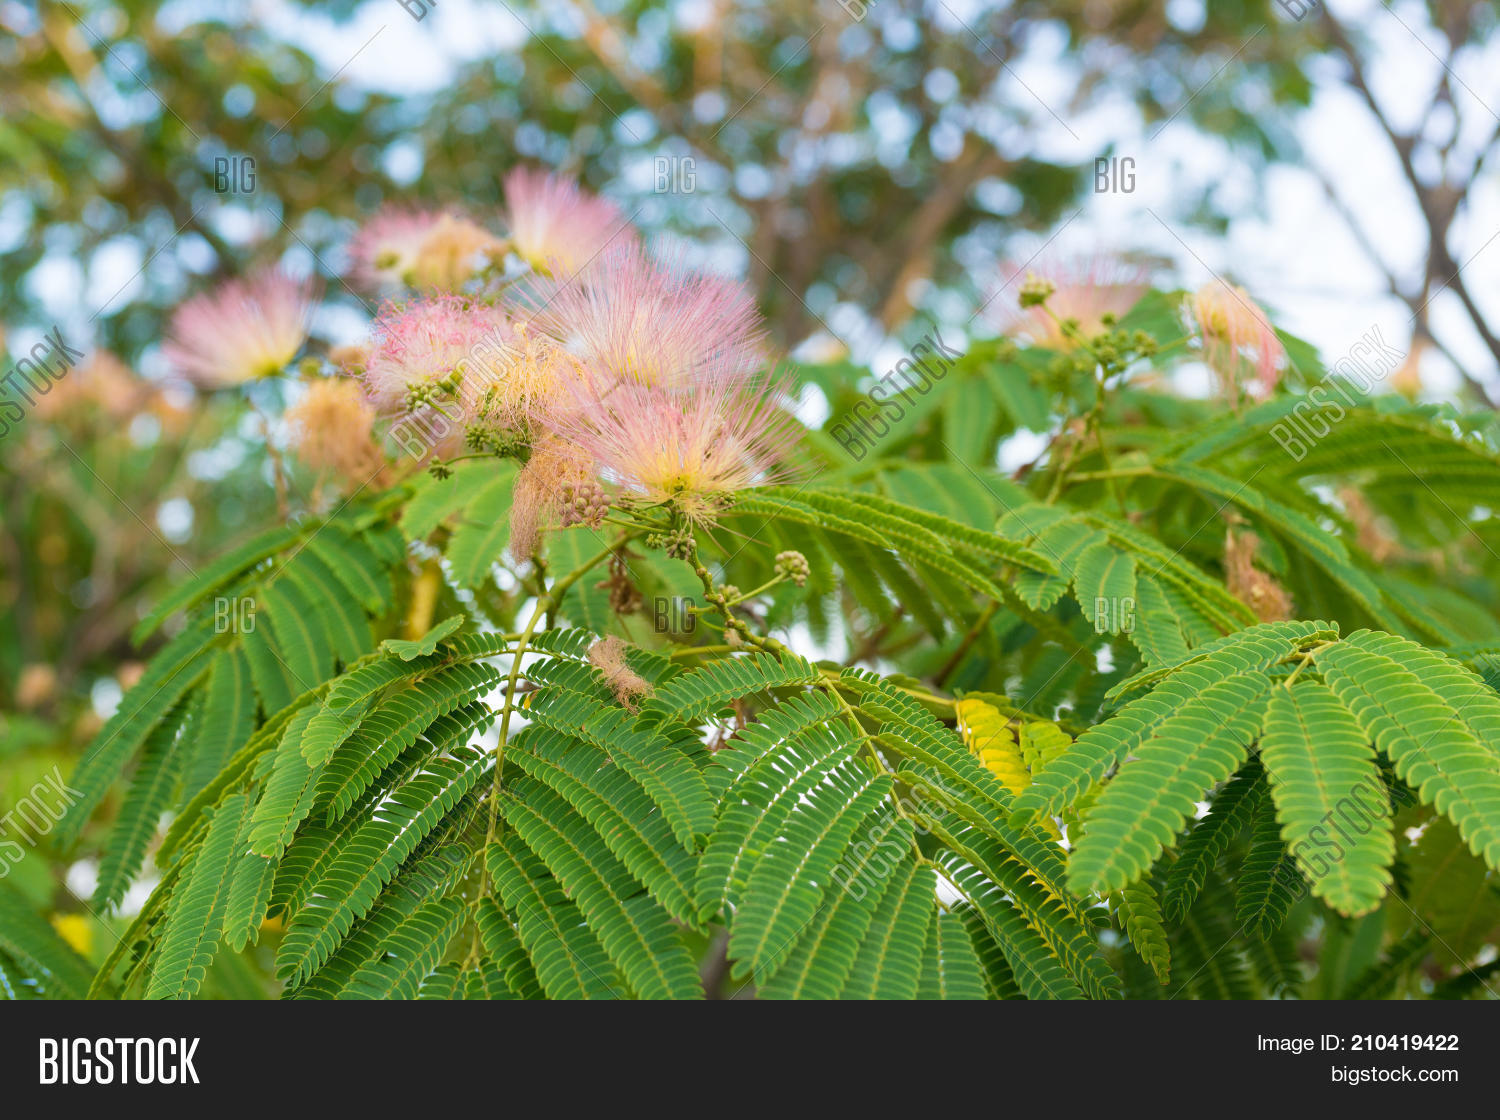 Light Fluffy Pink Image Photo Free Trial Bigstock